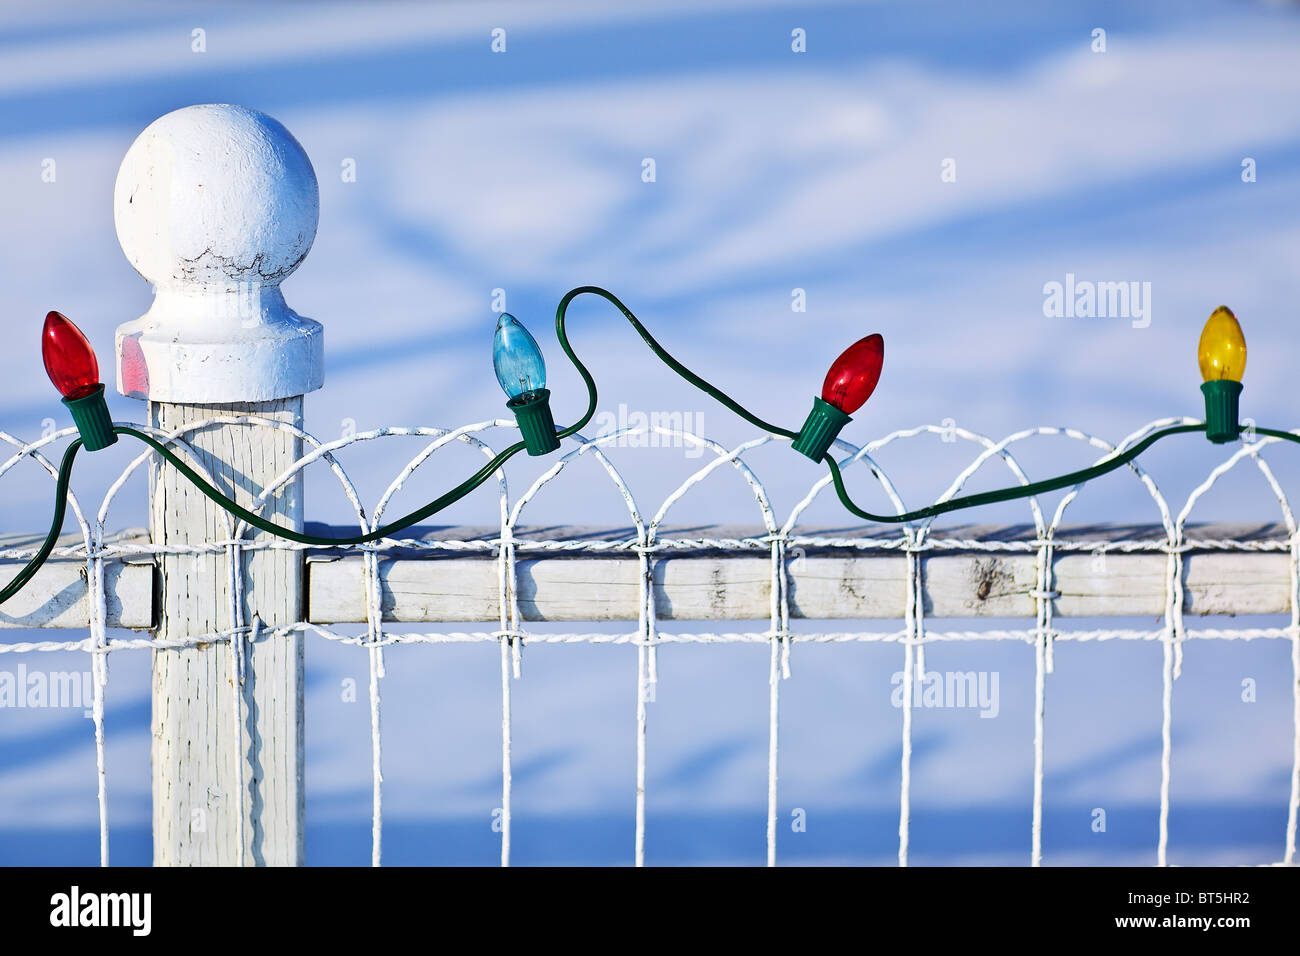 String of colored Christmas lights on a white fence, Gimli, Manitoba, Canada. - Stock Image